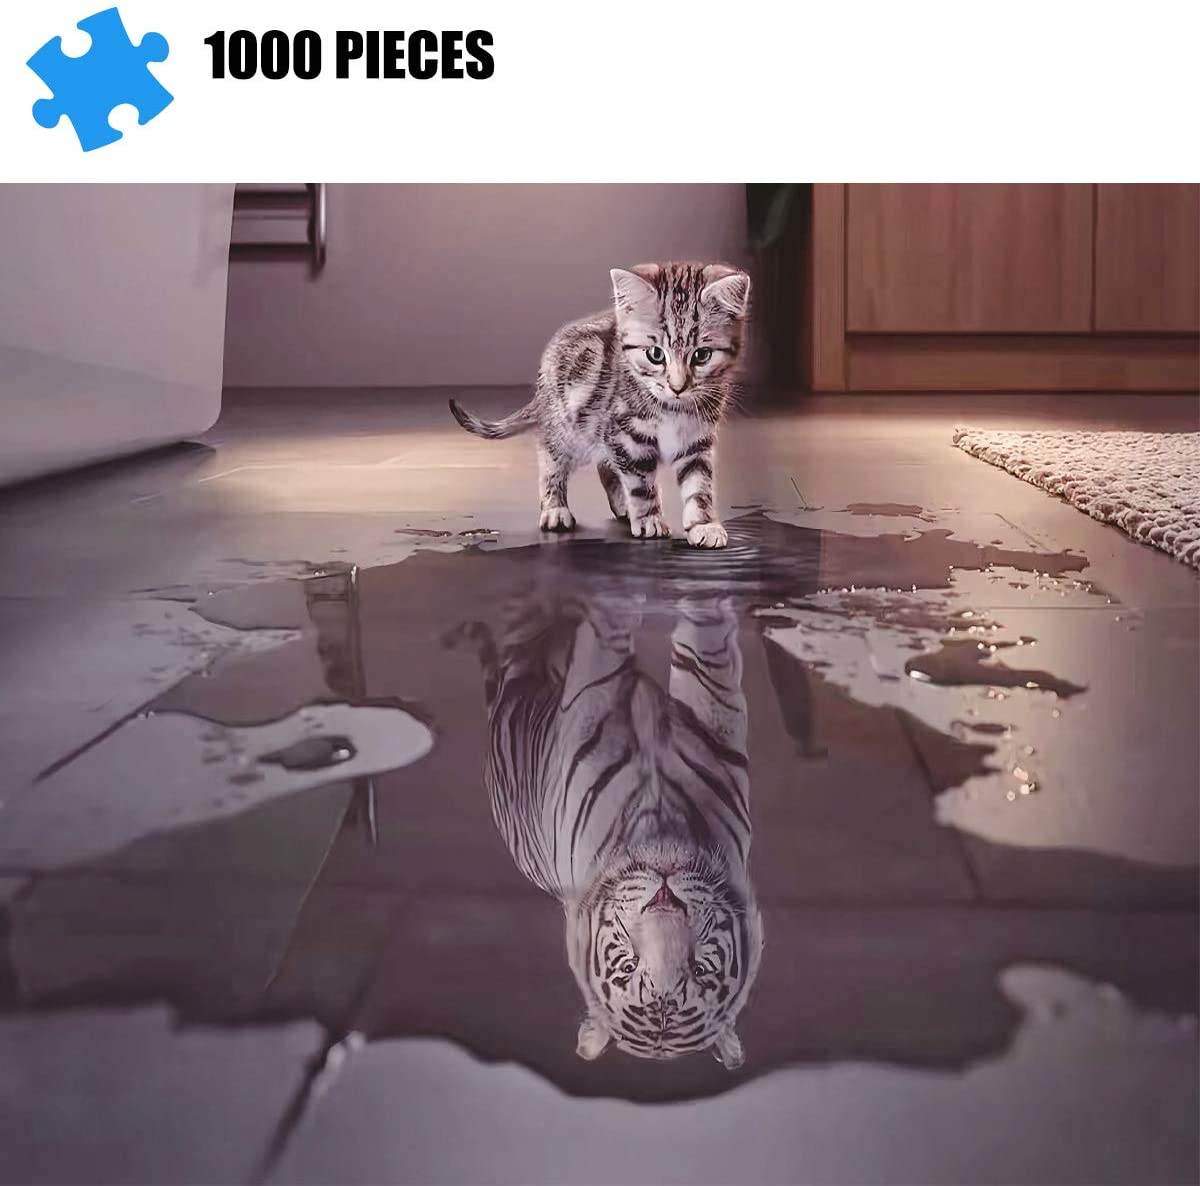 Puzzles for Adults 1000 Piece Jigsaw Puzzle -Tiger with Heart Educational Intellectual Decompressing Toy Fun Family Game for Kids Adults 830